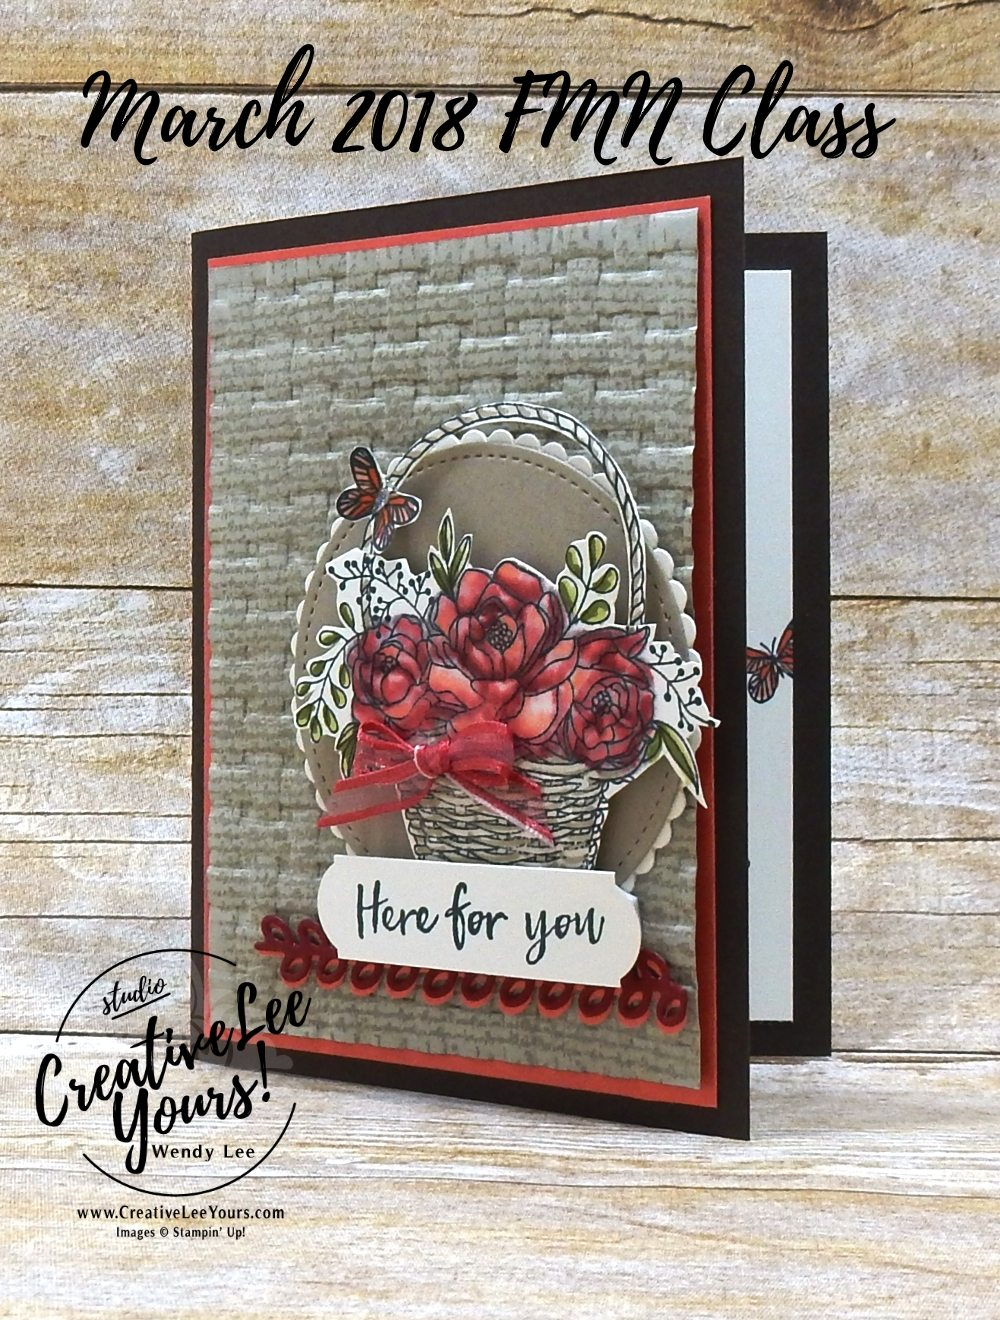 Here For You Basket by Wendy lee, Stampin Up, stamping, hand made, friend, sympathy,birthday,mothers day,#creativeleeyours, creatively yours, creative-lee yours,March 2018 FMN card class, forget me not, SAB, Sale-a-bration,blossoming basket stamp set, Burlap stamp set,FREE stamps,SU,SU cards,rubber stamps